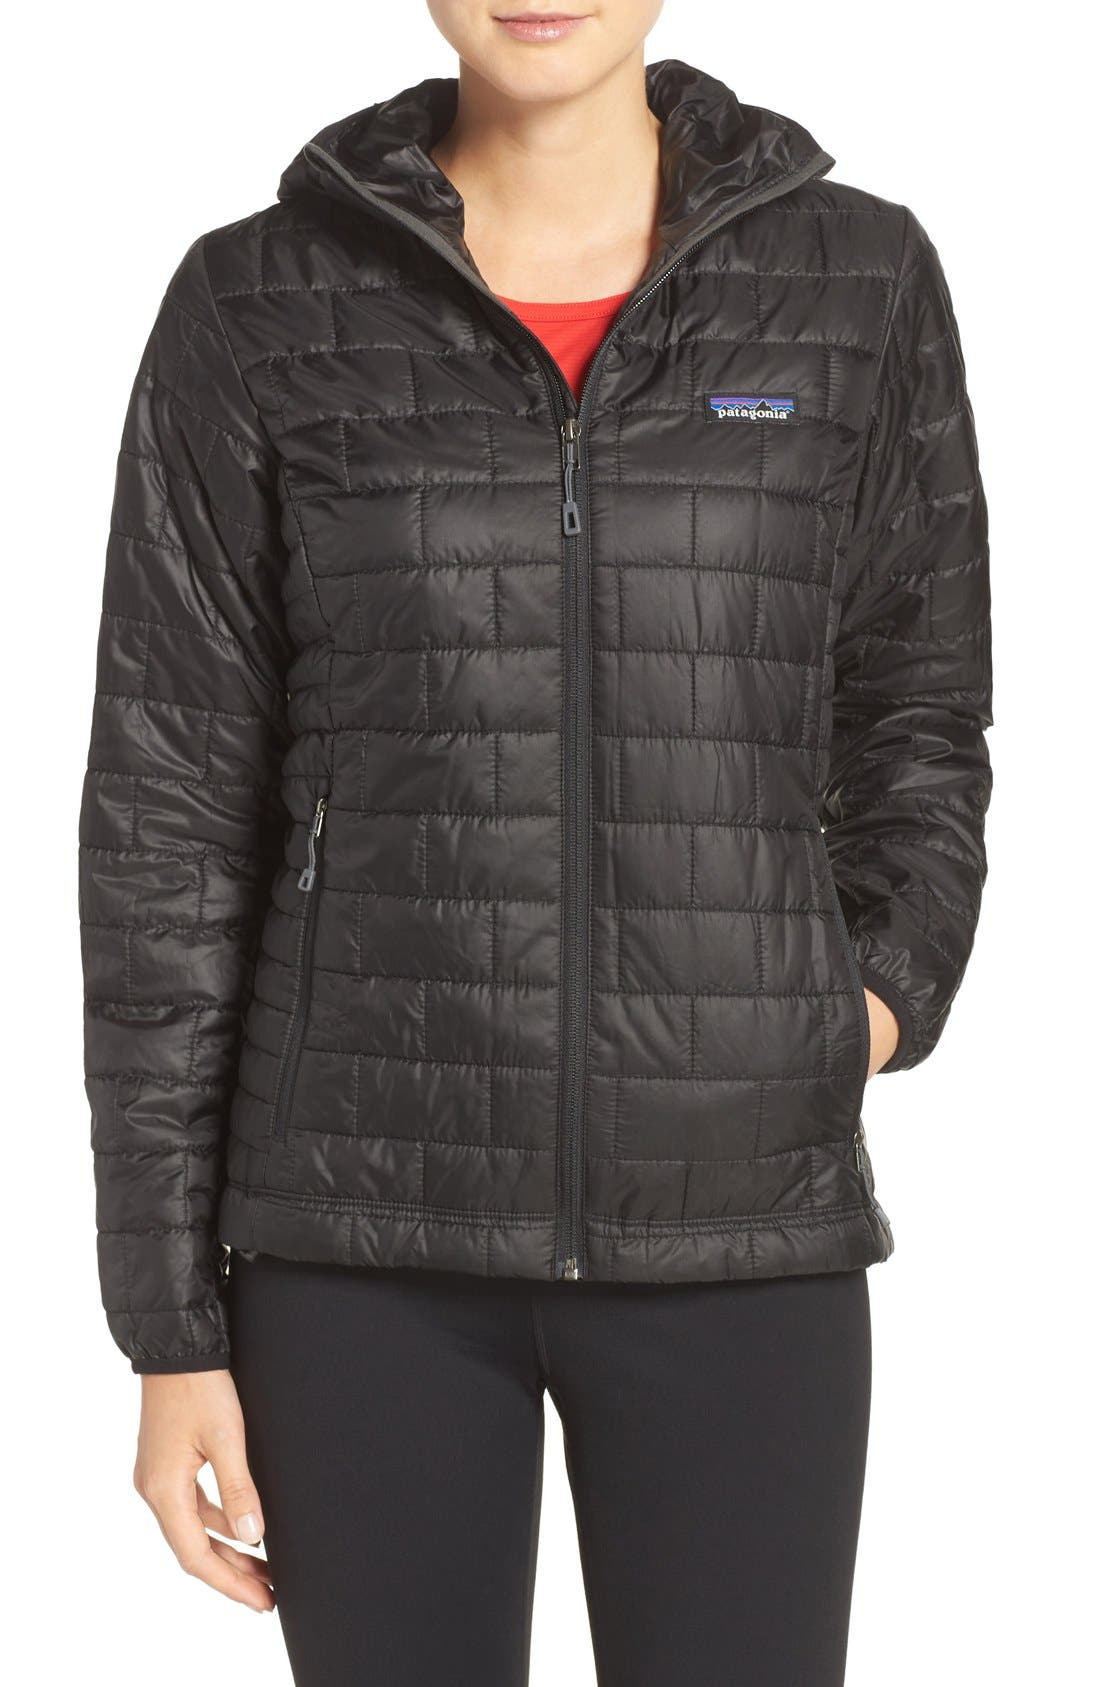 PATAGONIA, Nano Puff<sup>®</sup> Hooded Water Resistant Jacket, Main thumbnail 1, color, BLACK